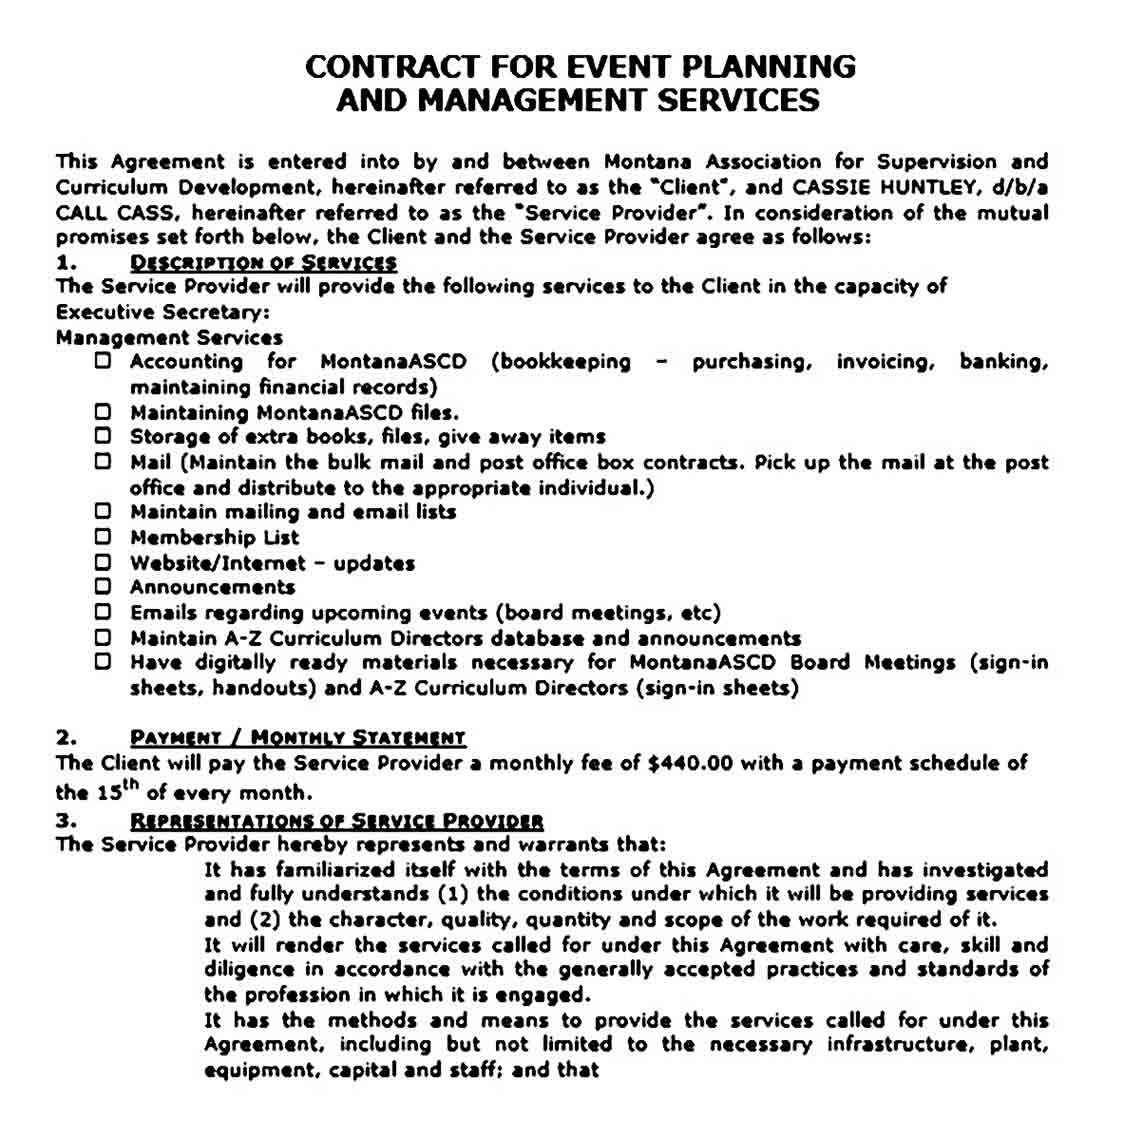 Contract for Event Planning and Management Services